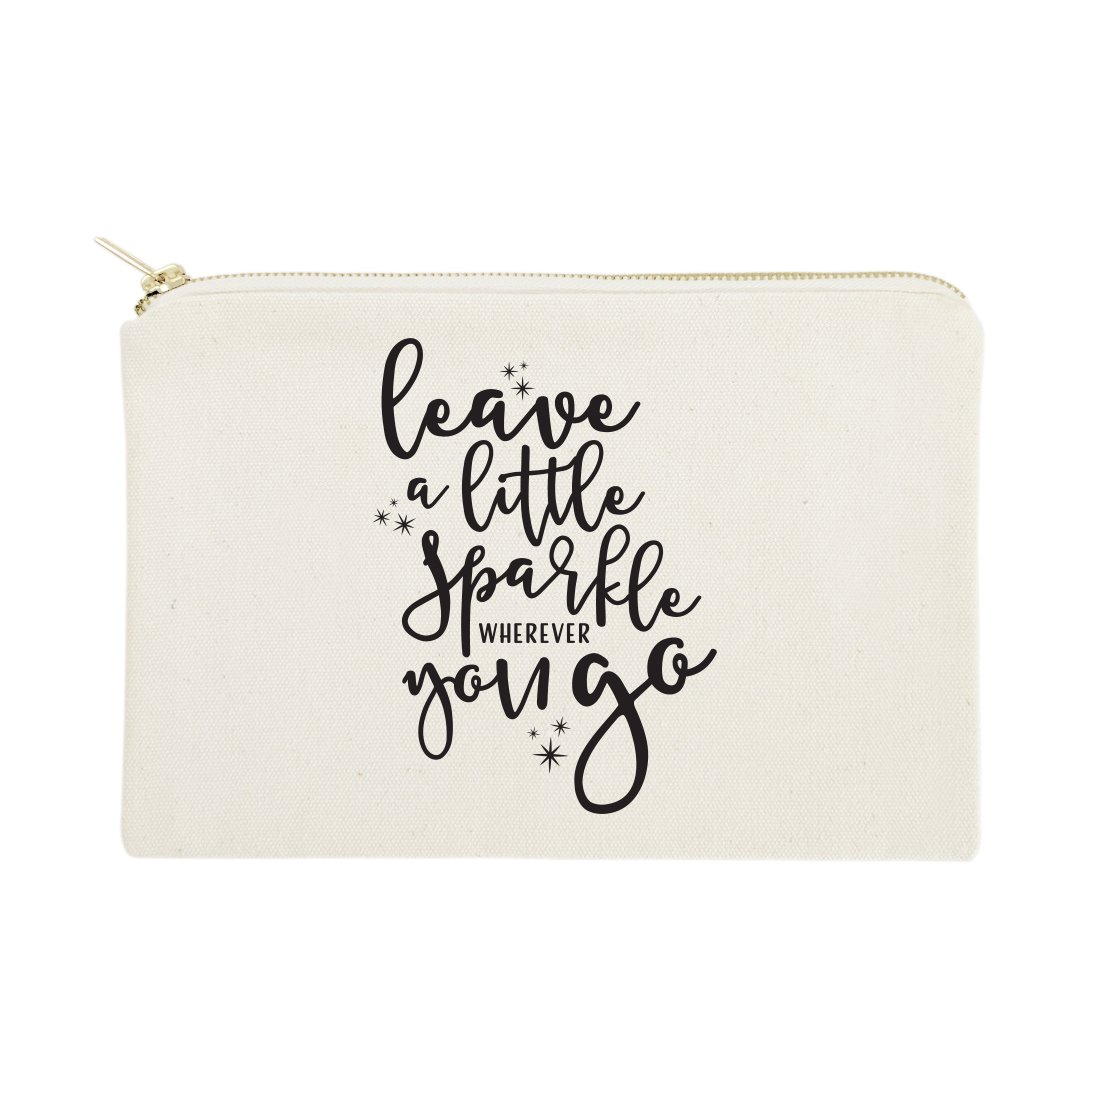 The Cotton & Canvas Co. Leave a Little Sparkle Wherever You Go Cosmetic Bag and Travel Make Up Pouch